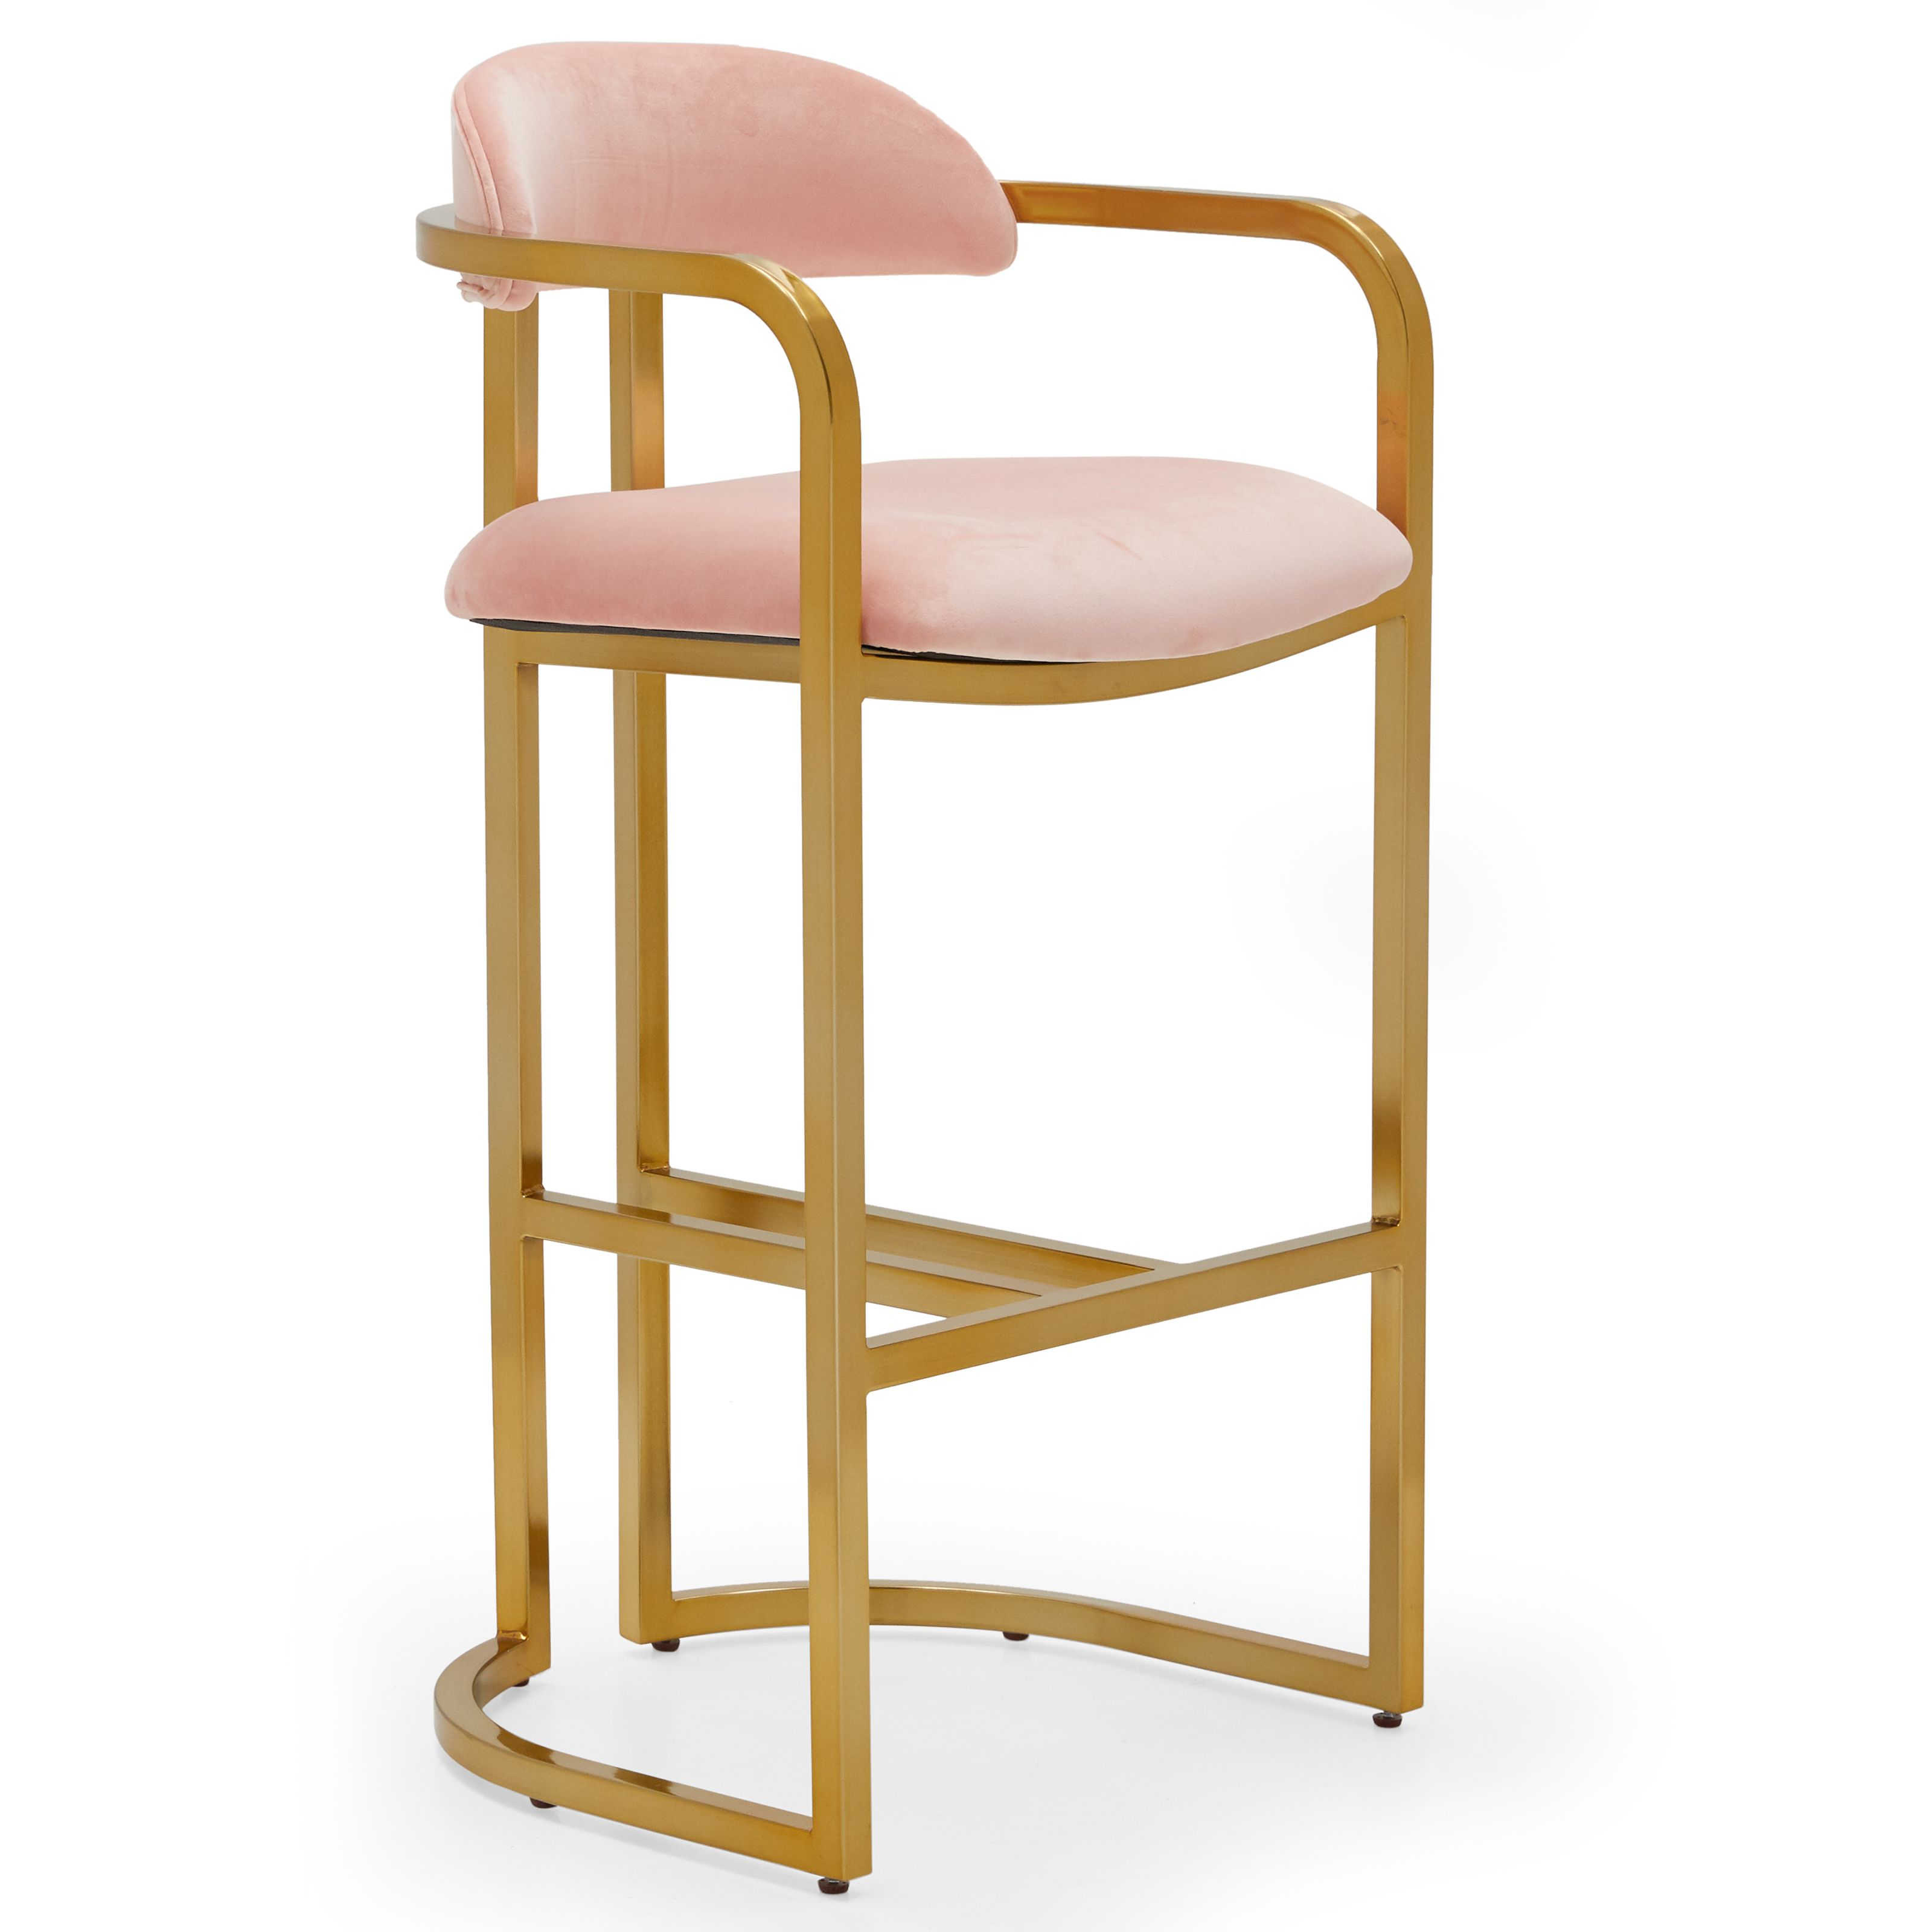 Amazing Buy Modrn Glam Marni Metal Base Bar Stool Multiple Colors Squirreltailoven Fun Painted Chair Ideas Images Squirreltailovenorg